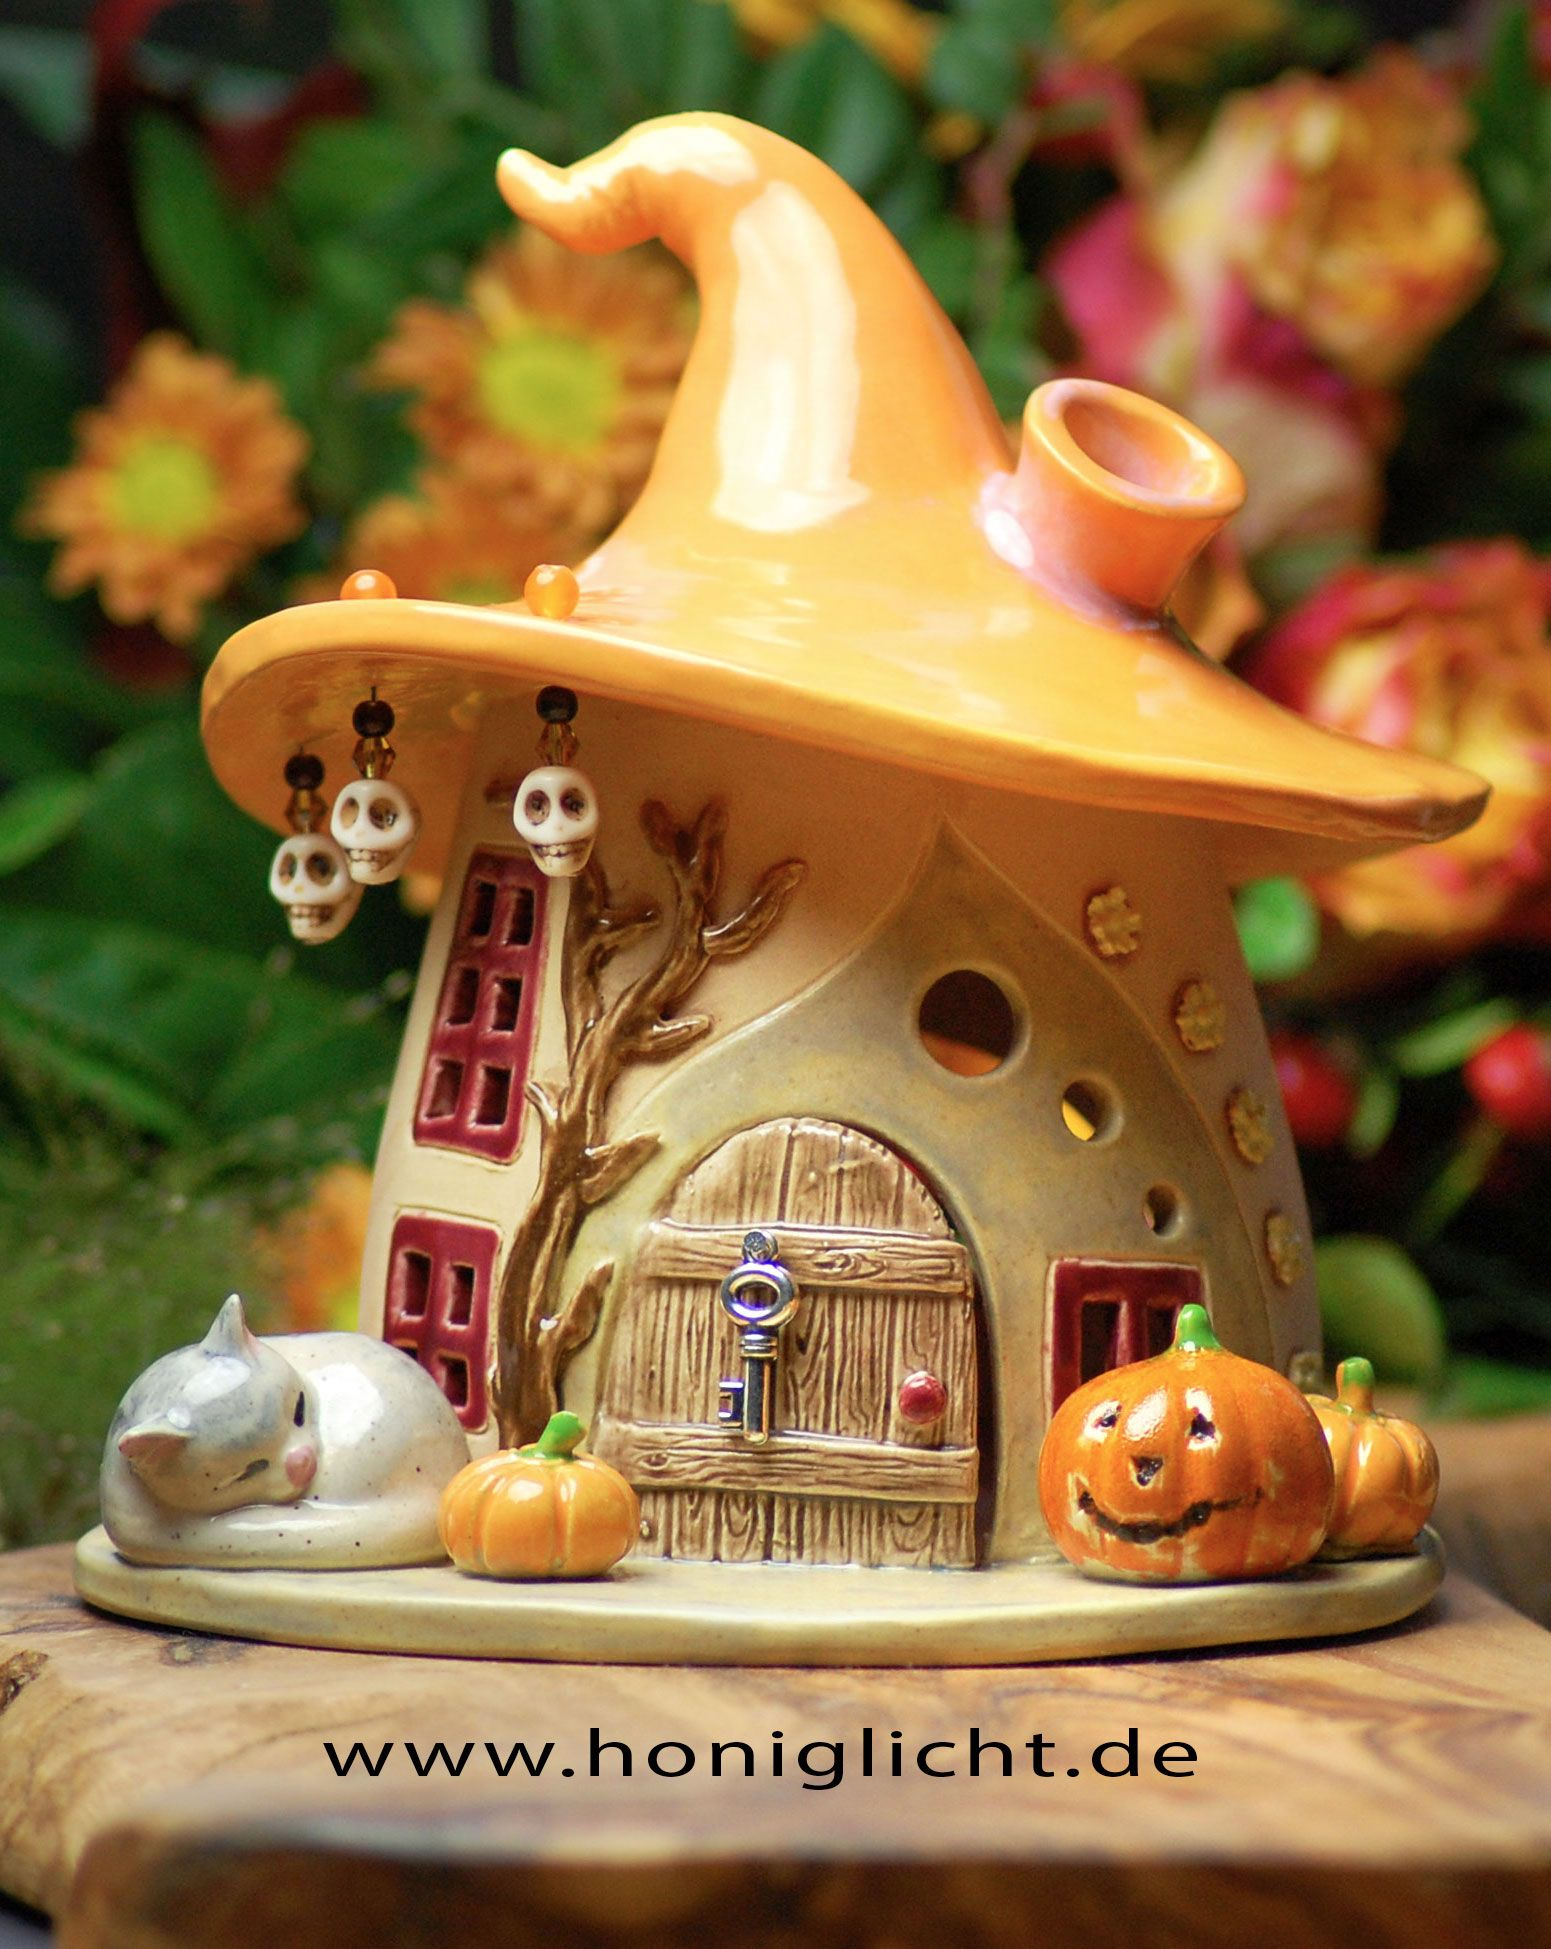 Ceramic Fairy Houses - Year of Clean Water